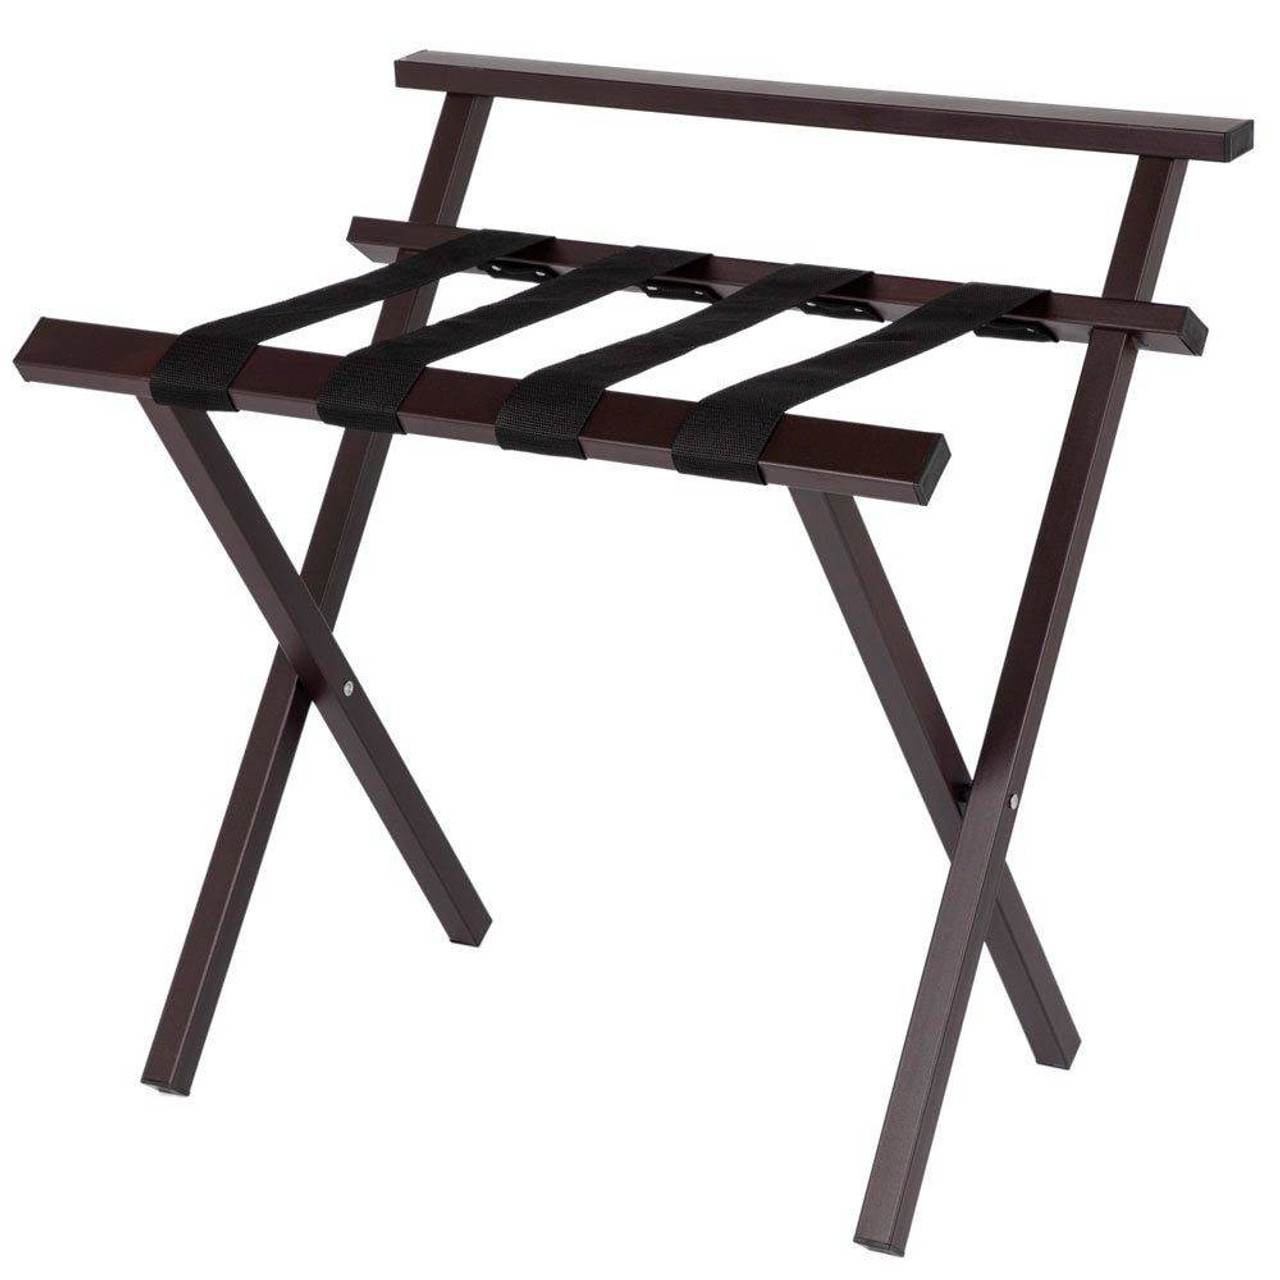 HOSPITALITY 1 SOURCE HOSPITALITY 1 SOURCE or METROPOLITAN POWDER COAT LUGGAGE RACK or BACK and BLACK STRAPS or BROWN FINISH or 4 PER CASE